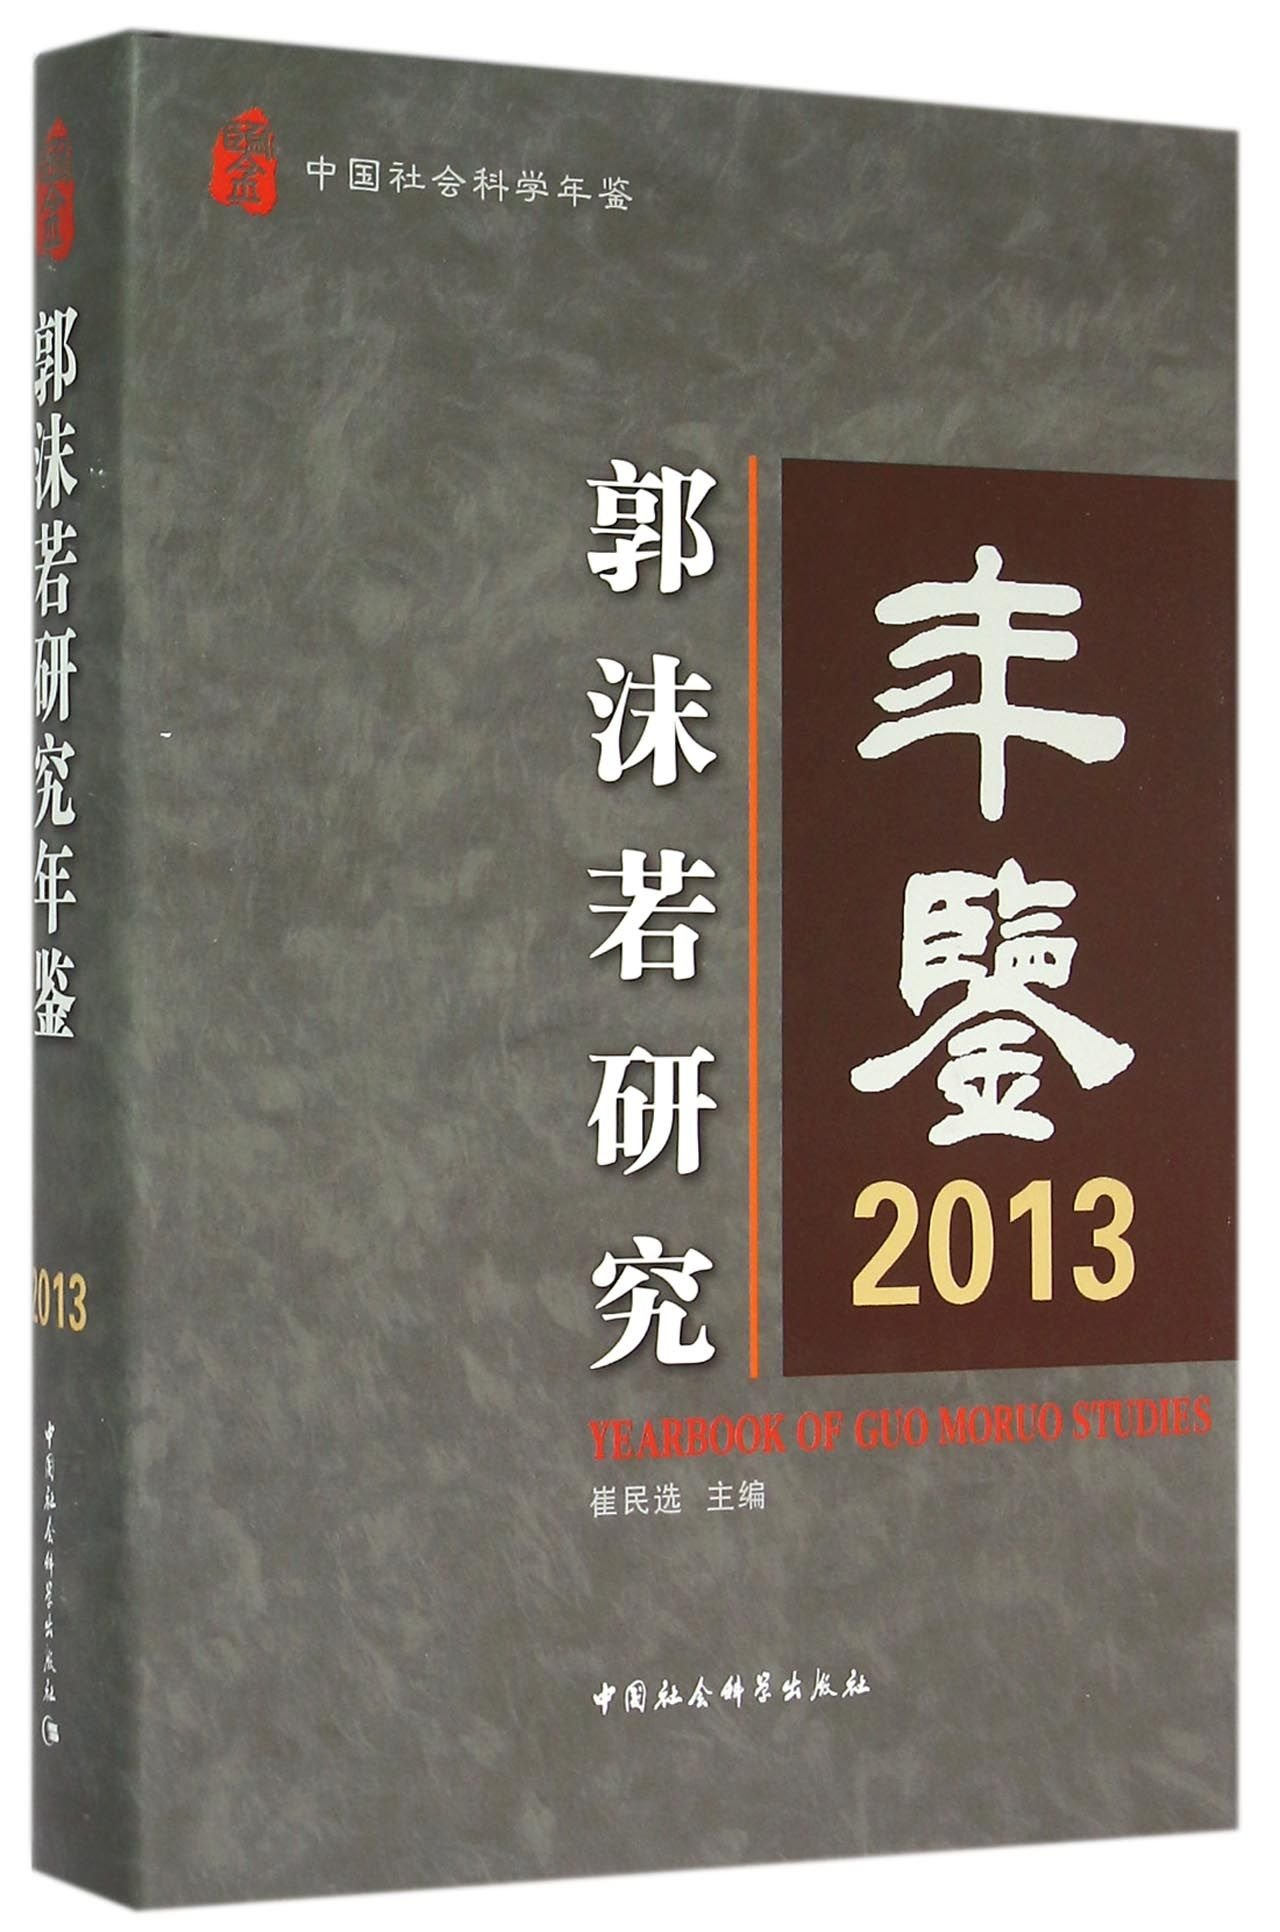 China Social Sciences Yearbook: Guo Research Yearbook 2013(Chinese Edition) pdf epub